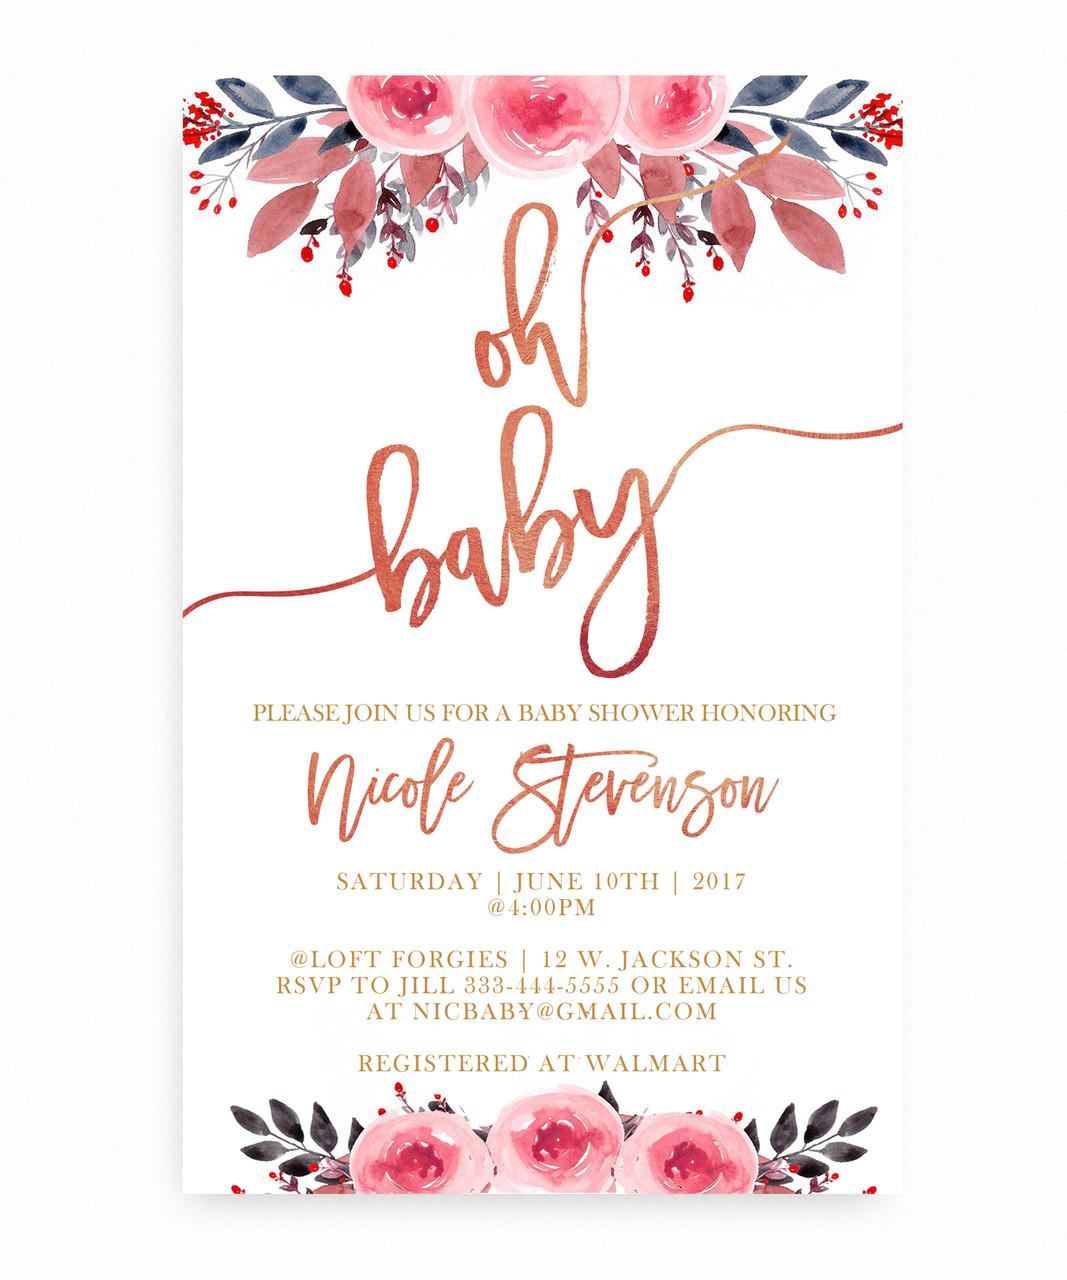 Watercolor Flower Baby Shower Invitation